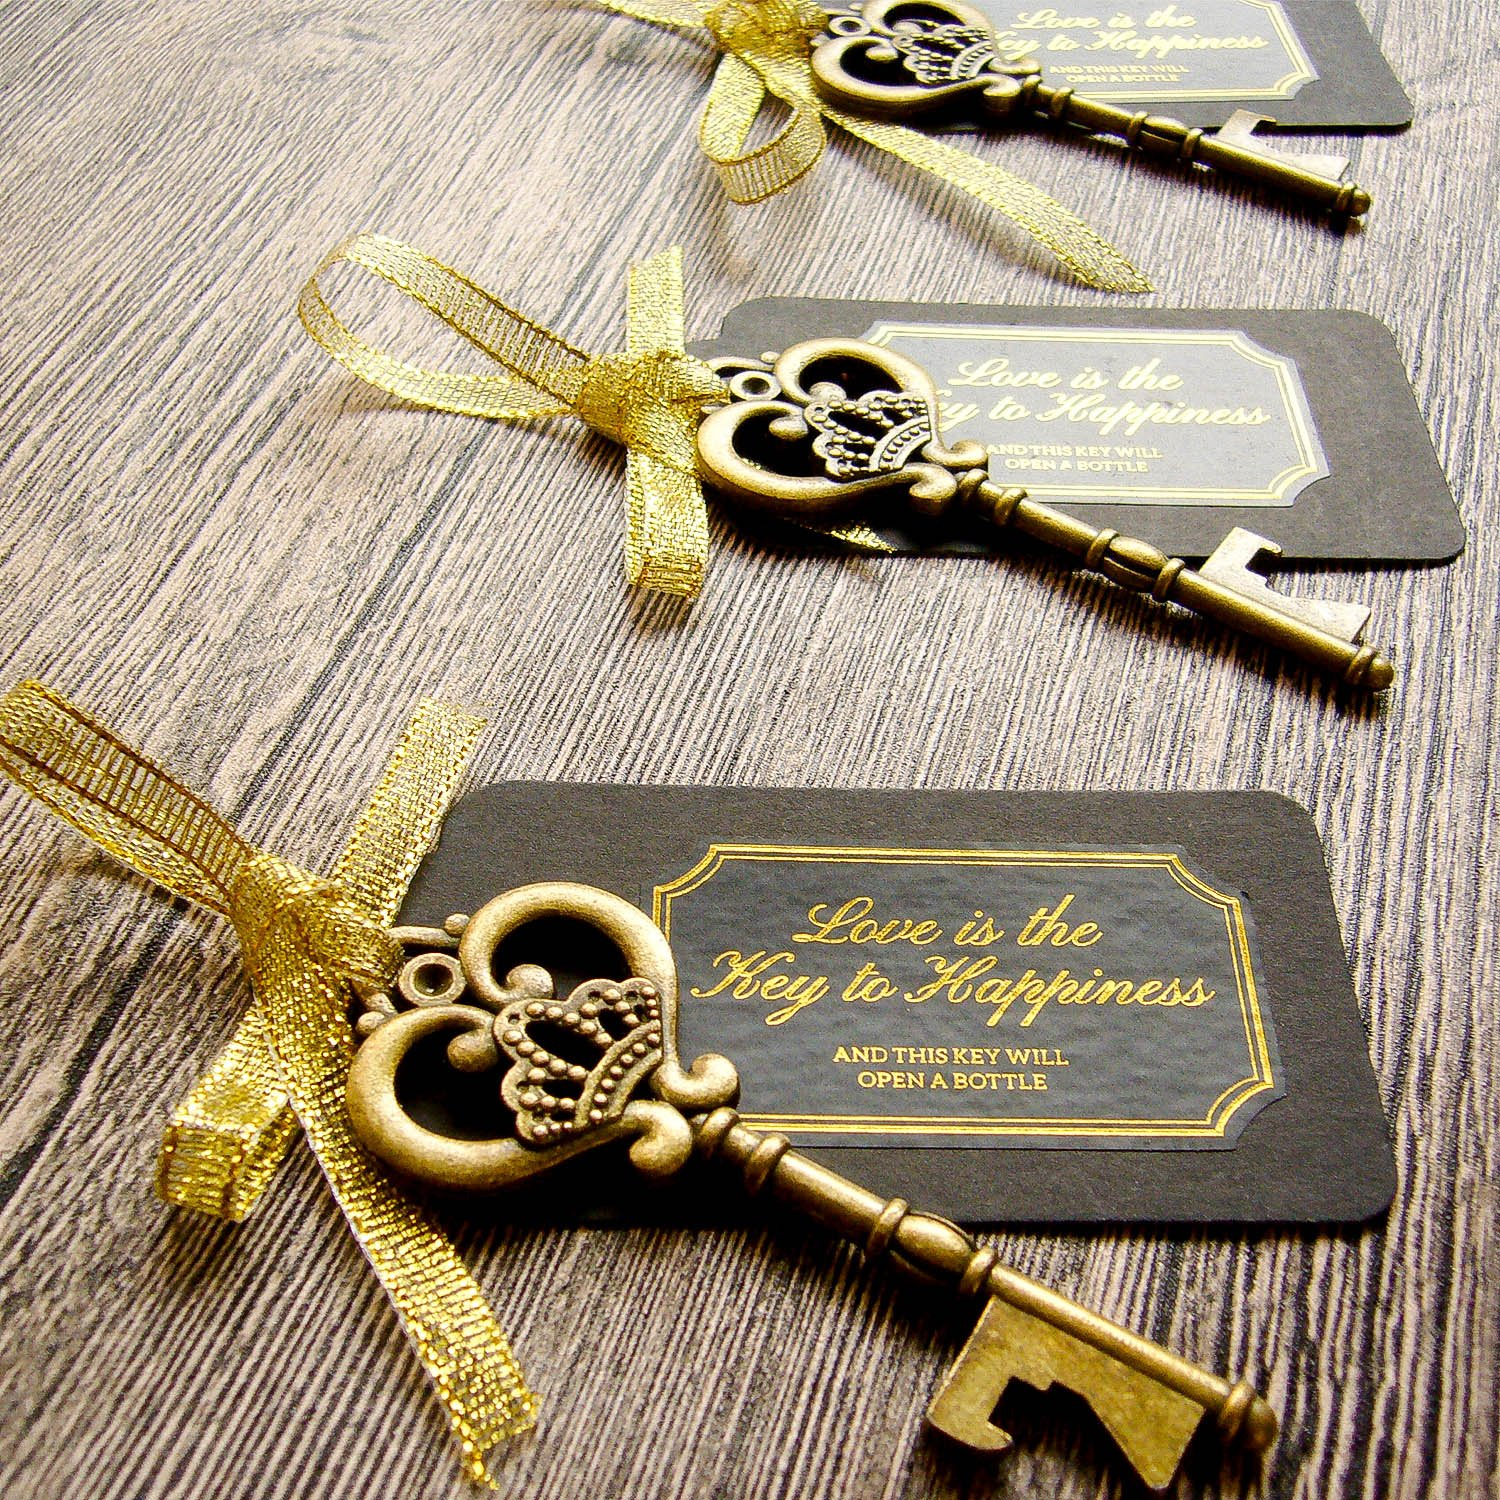 52 Heavy-Duty Metal Large Skeleton Key Bottle Opener Wedding Favor with Tag (Chalkboard Look-alike), FREE Gold Ribbon and Stickers, Vintage Bridal Shower Favors Bottle Opener for Guests (Antique Gold) by EFOXMOKO